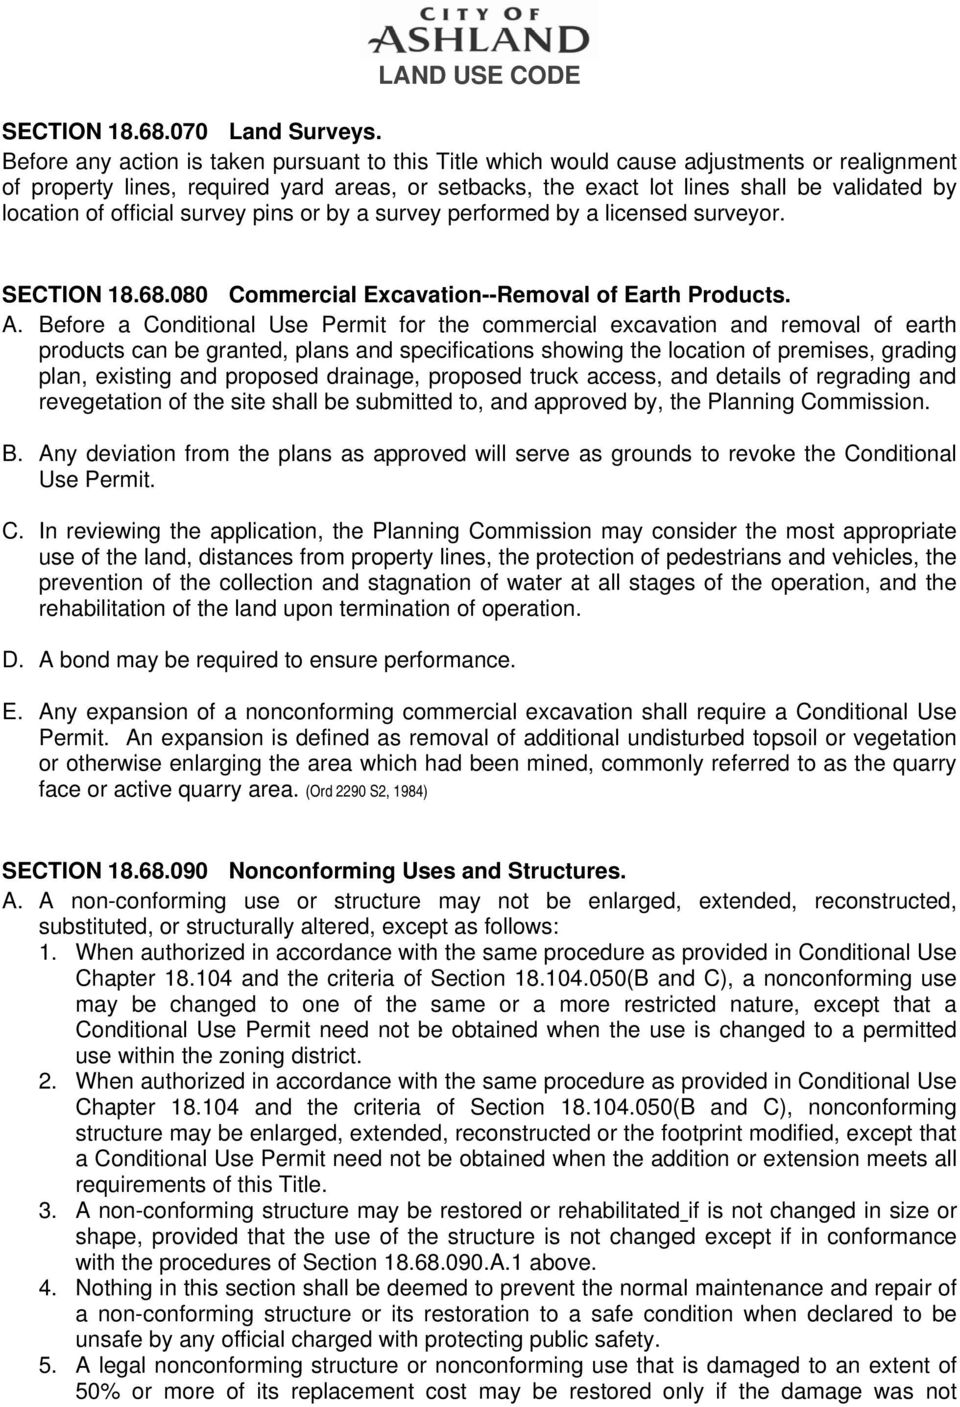 of official survey pins or by a survey performed by a licensed surveyor. SECTION 18.68.080 Commercial Excavation--Removal of Earth Products. A.